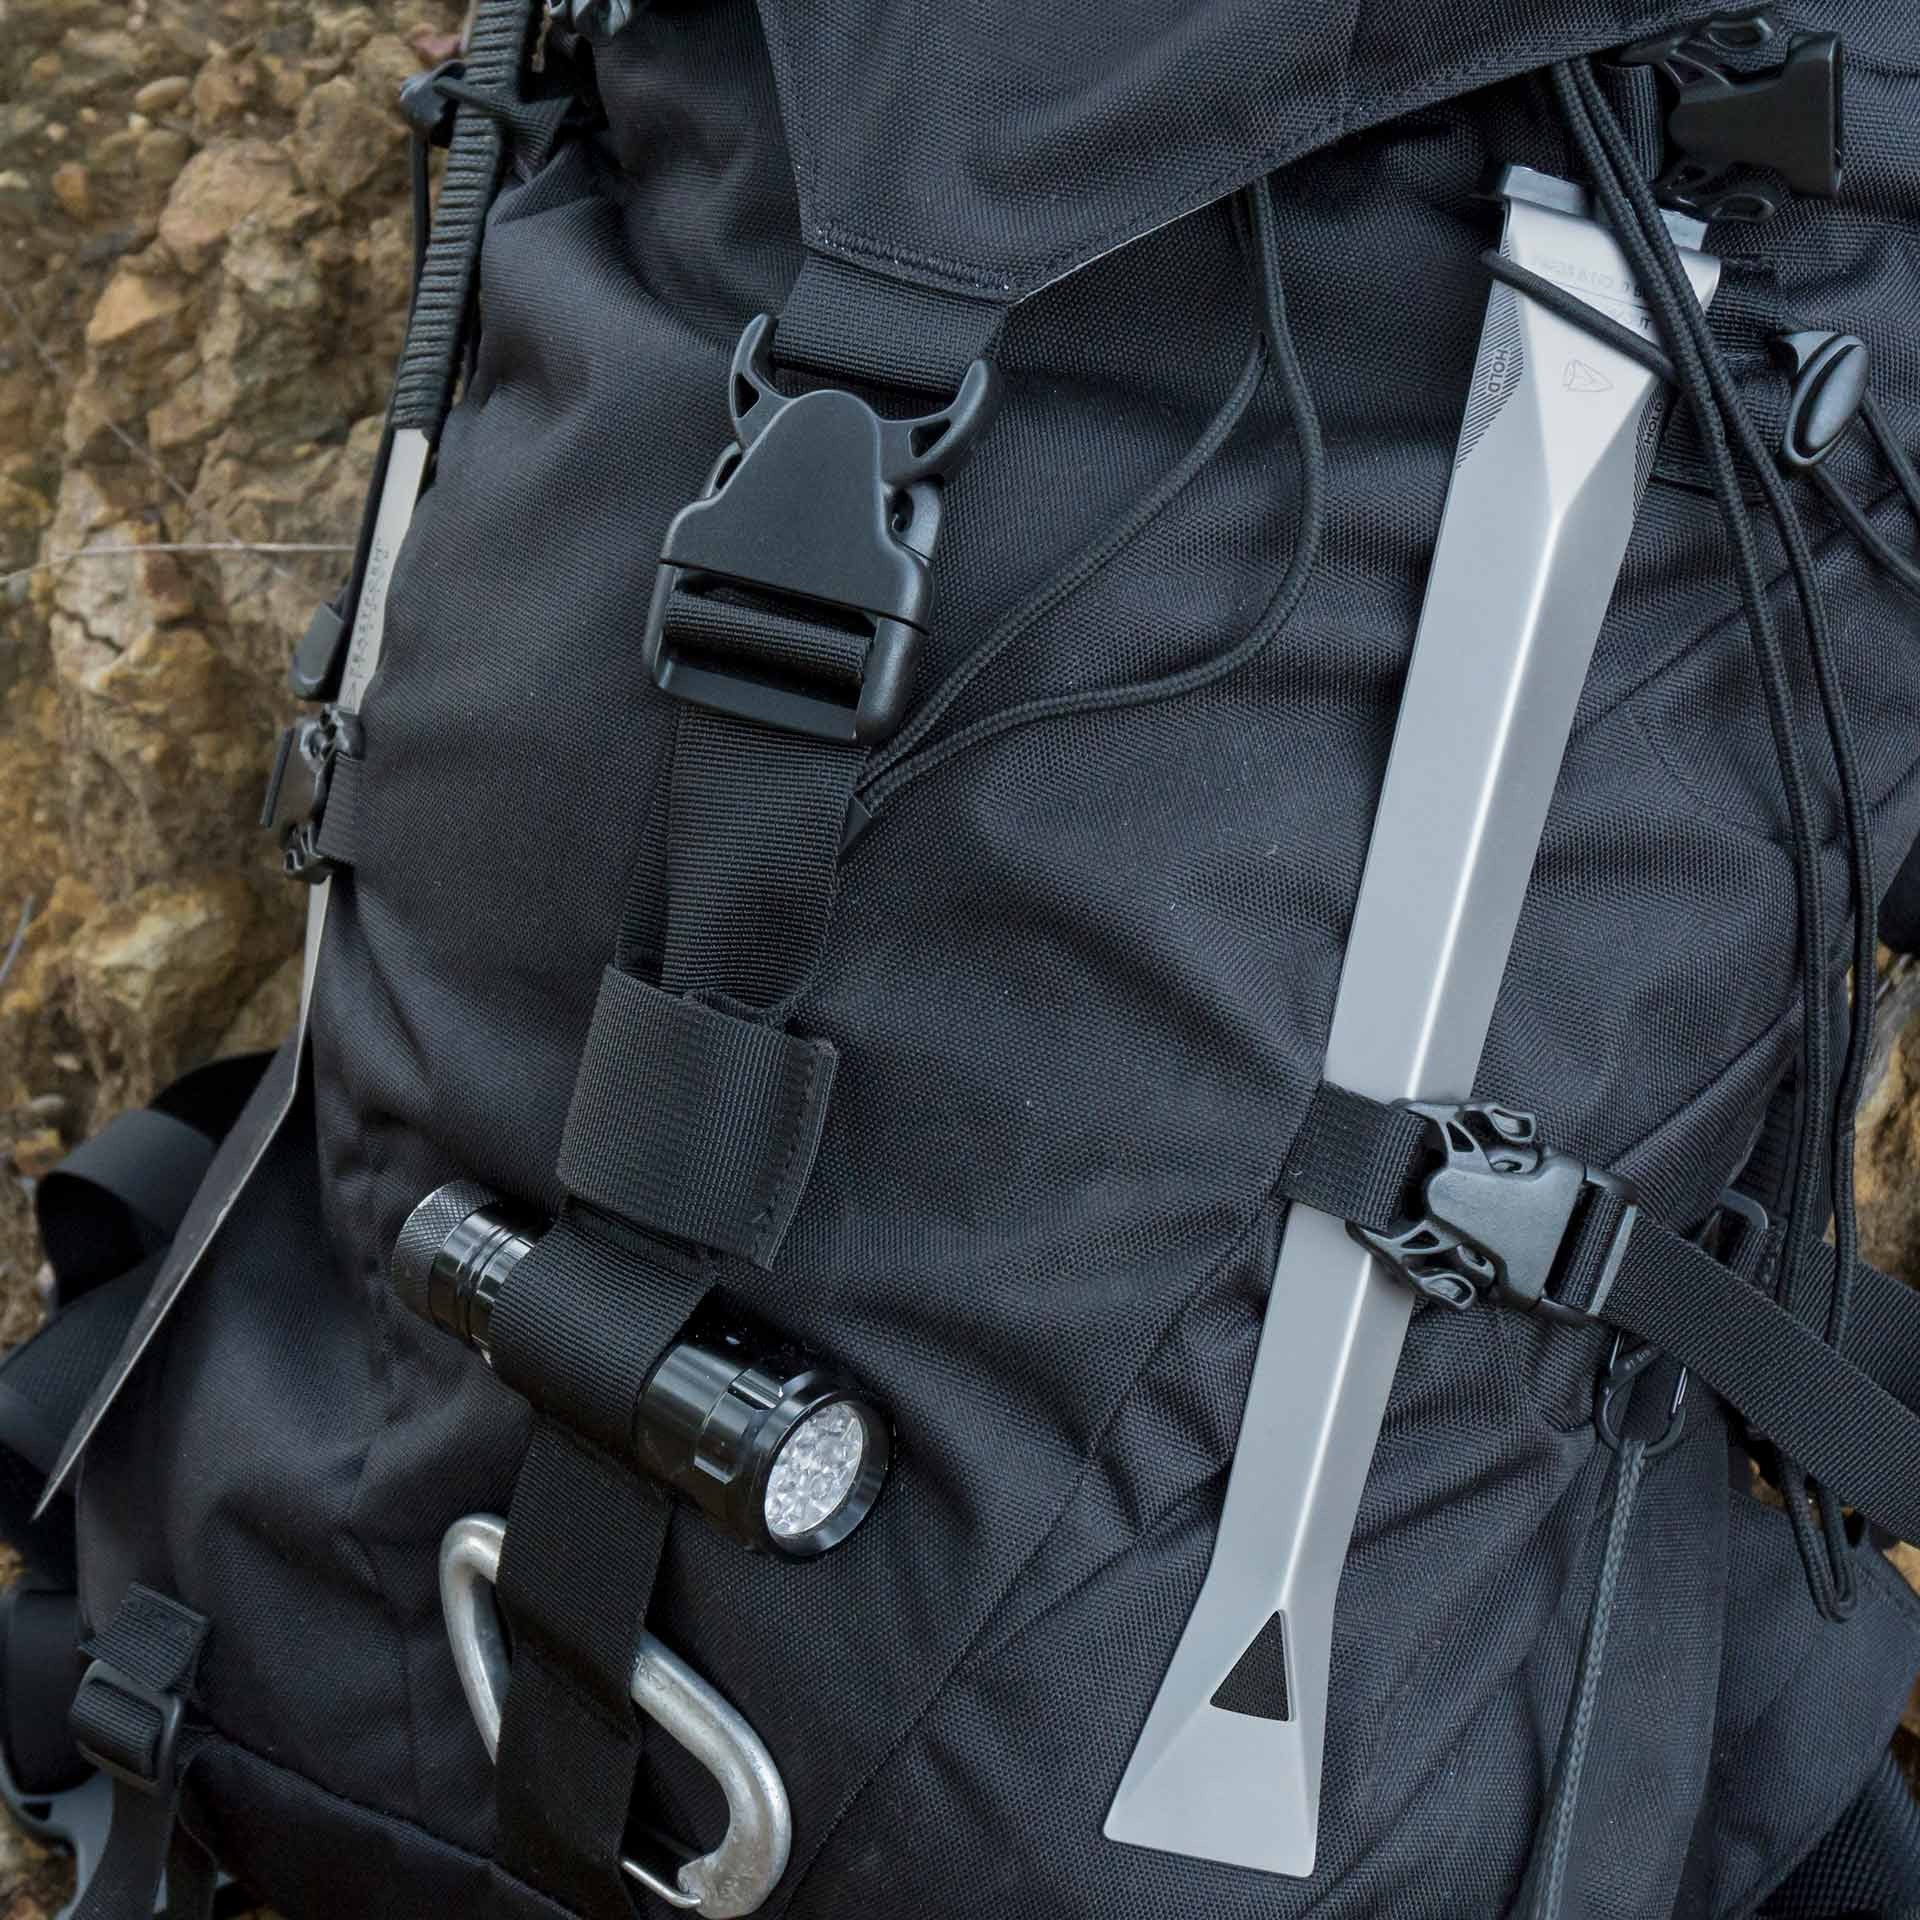 Lightweight nested Feastform titanium camping tongs strapped to backpack.